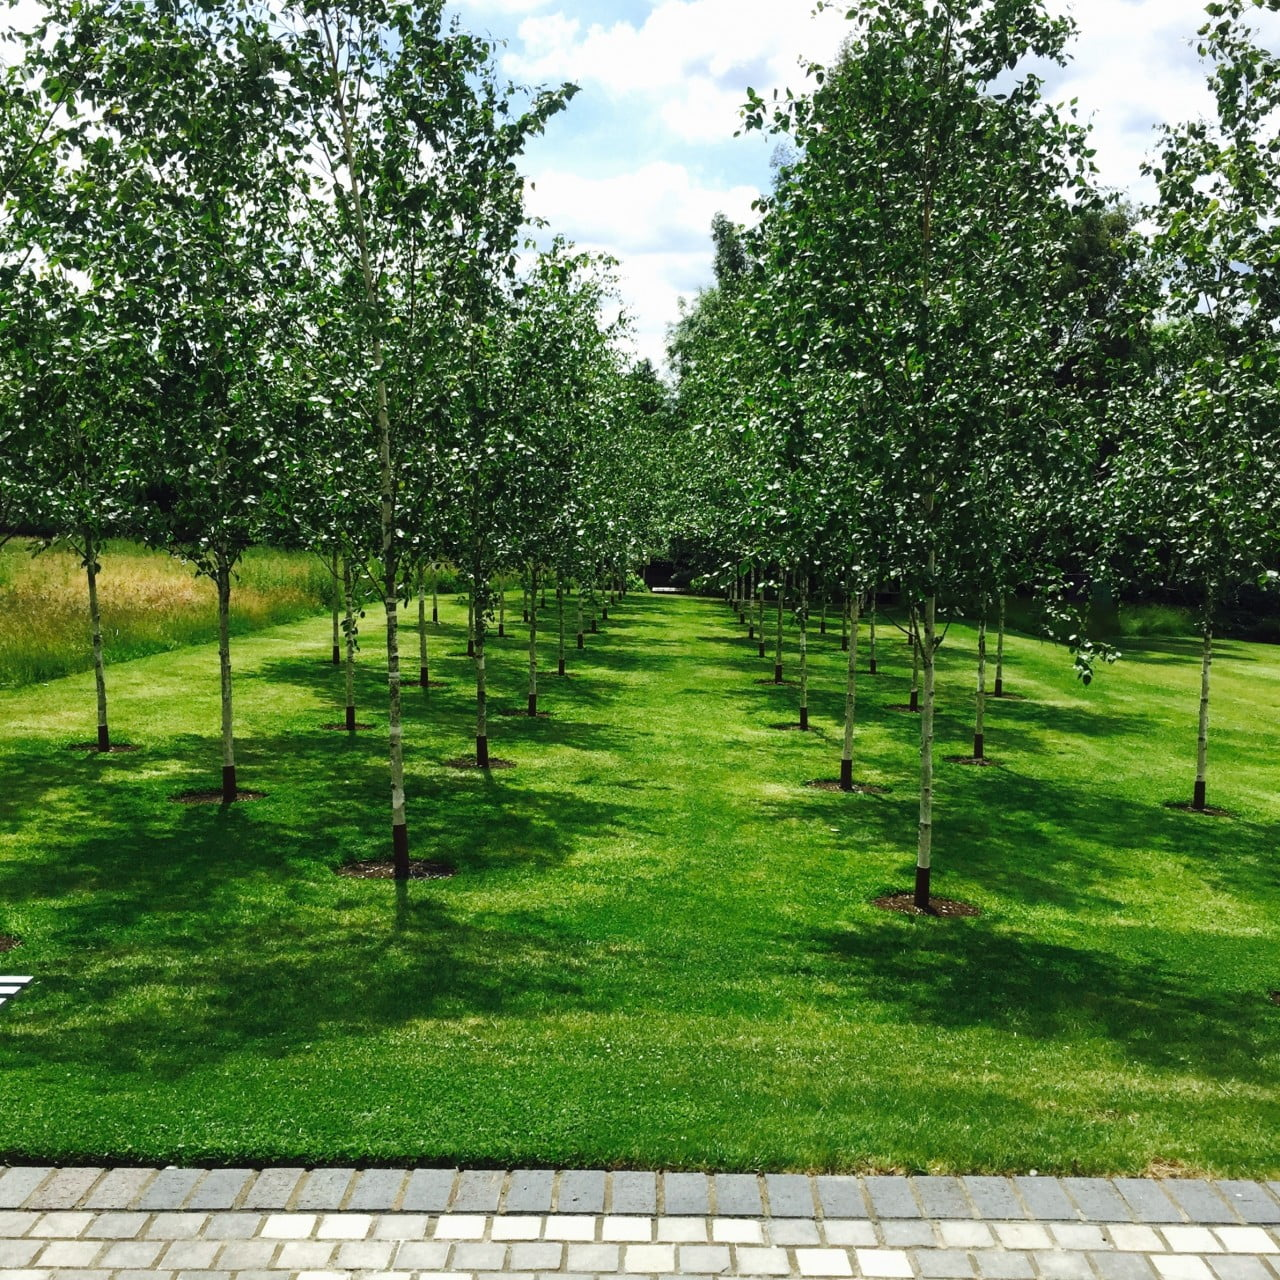 This avenue of silver birch trees is one of my favourite sightlines in this garden I designed for Jane in Buckinghamshire